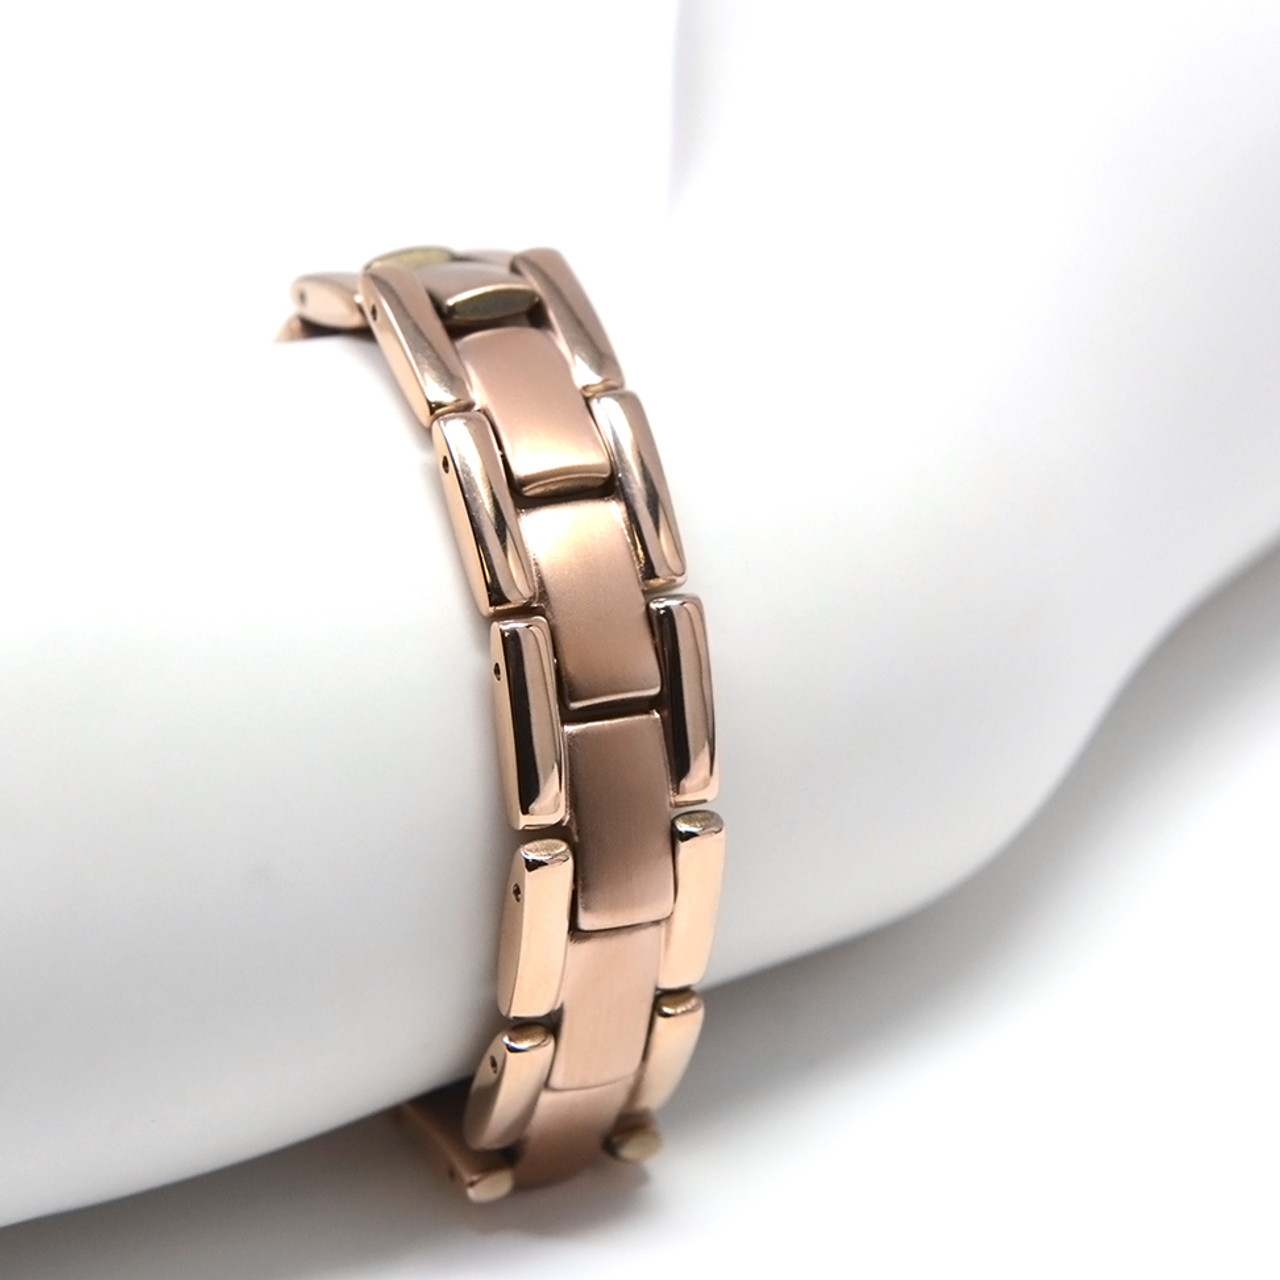 rose gold gauss a bracelet quad novoa dsc magnetic colored mens men s titanium element